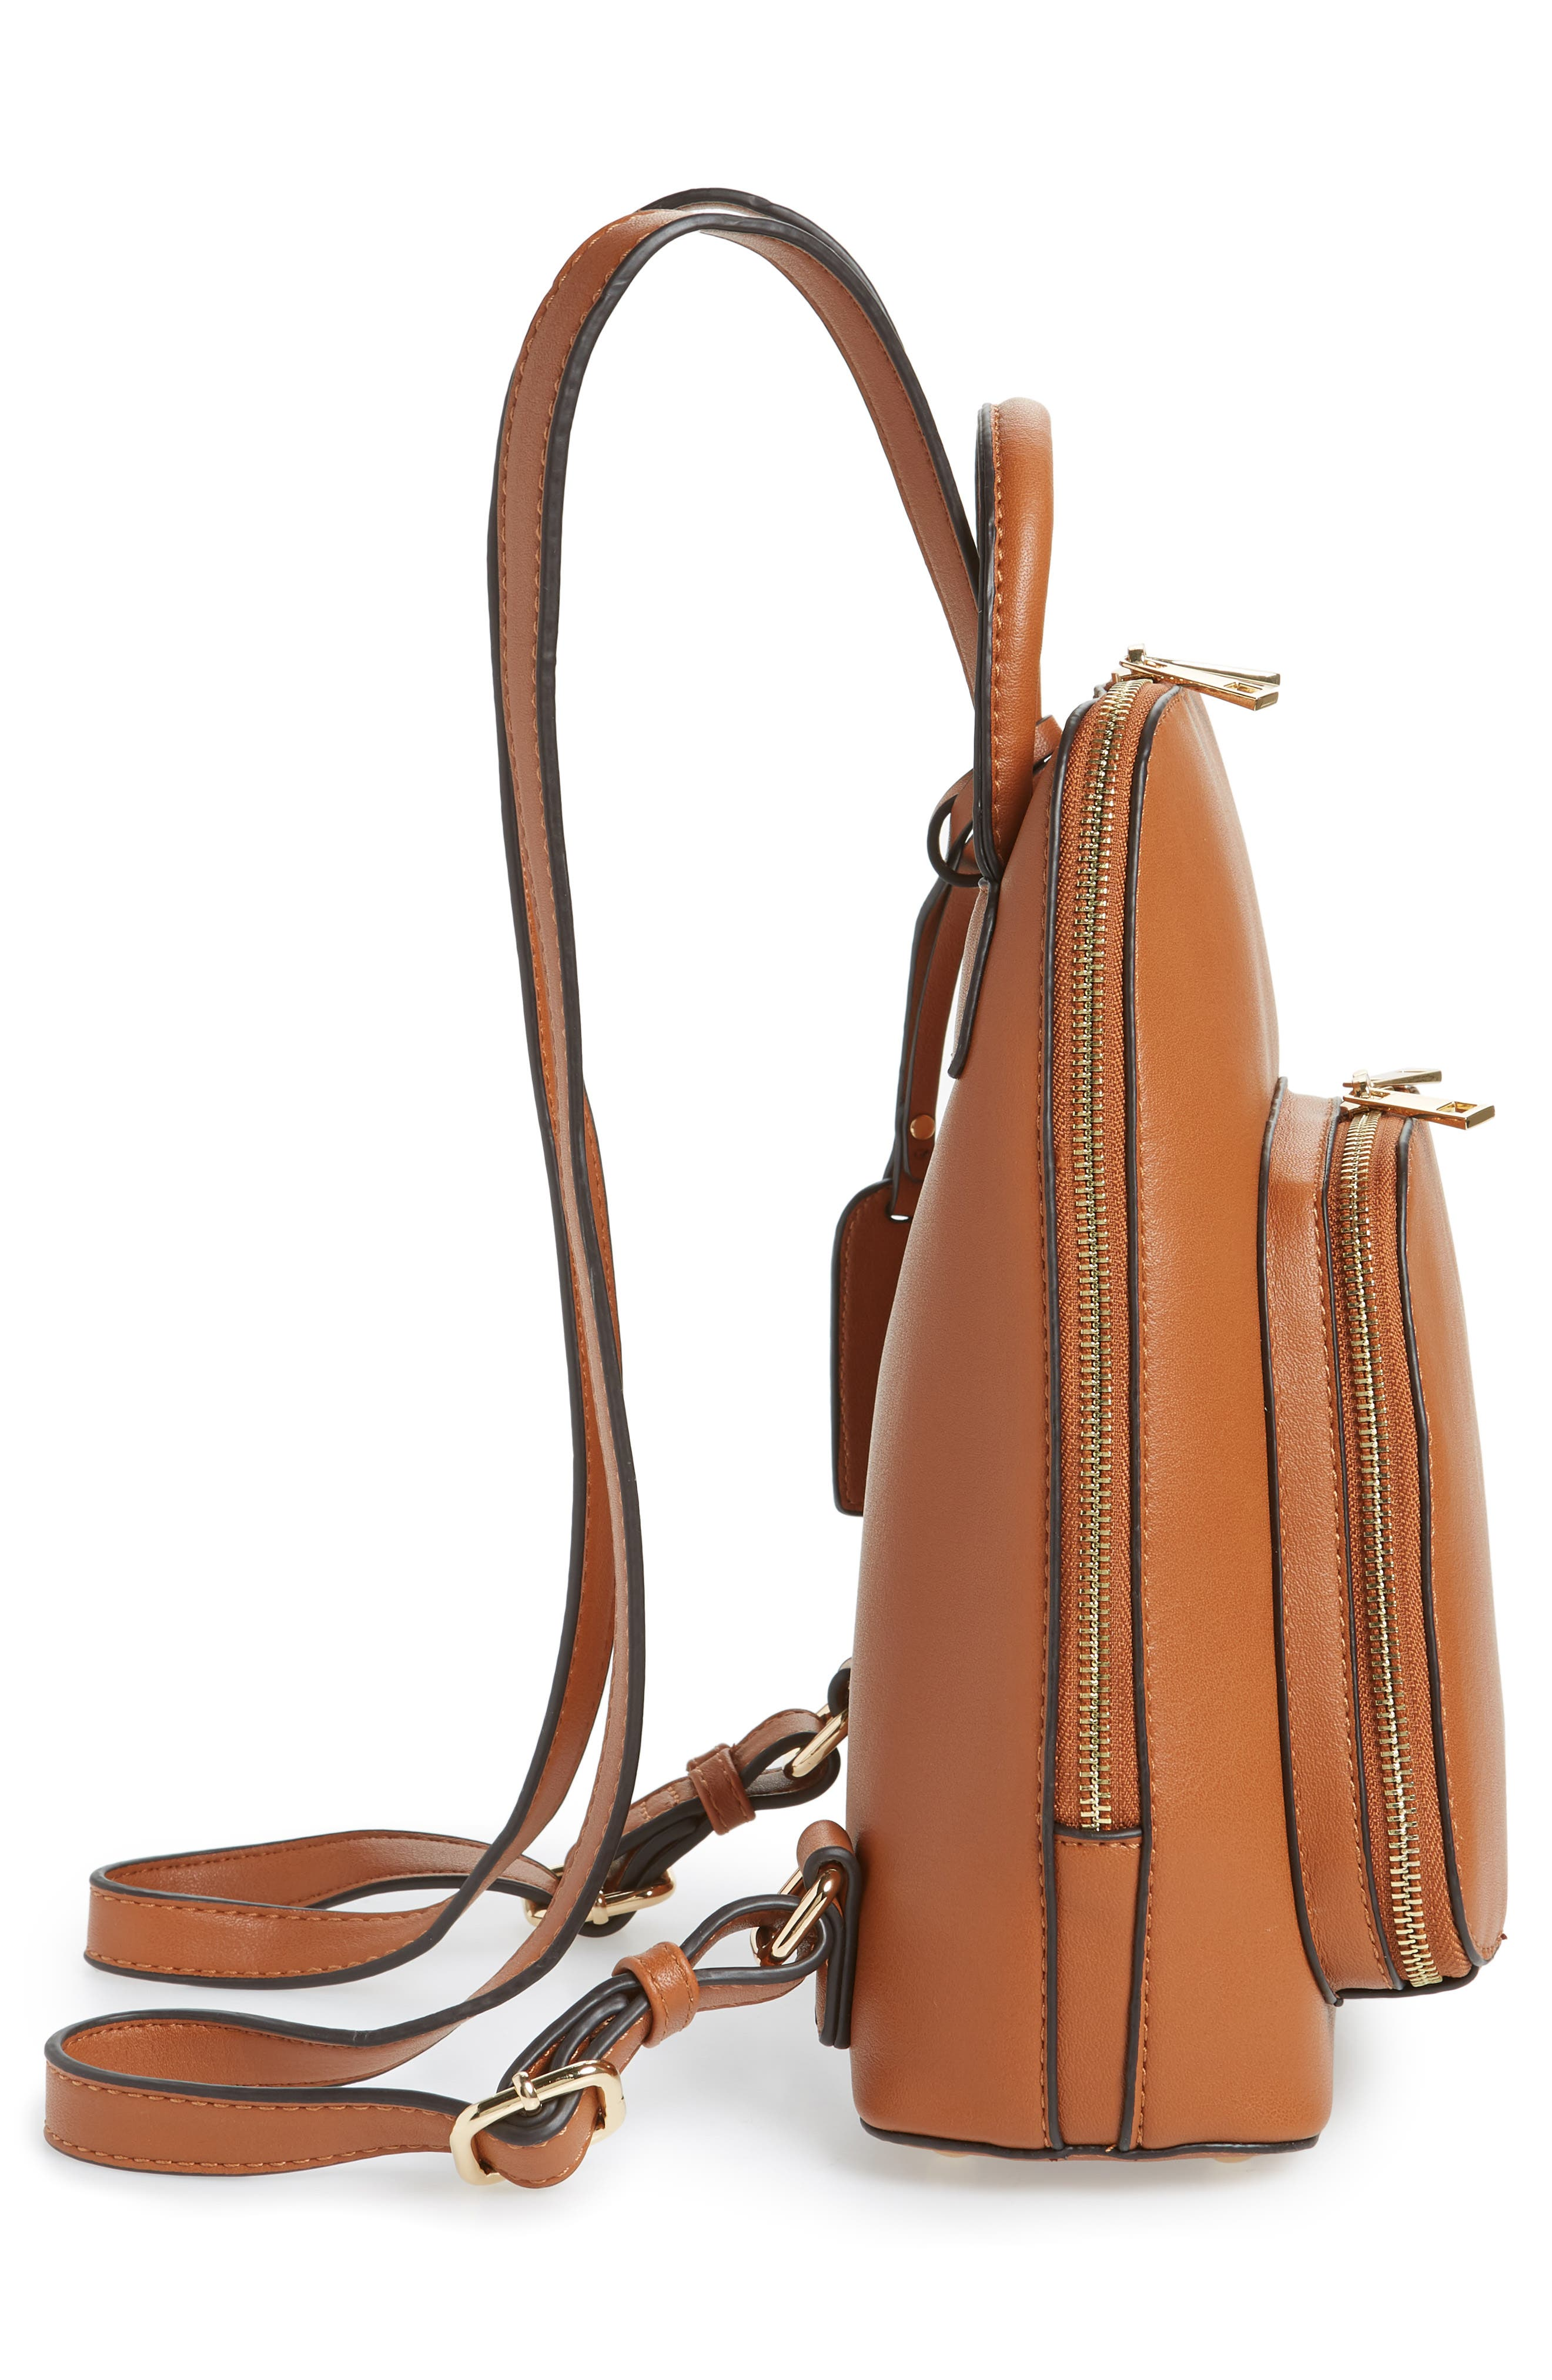 SOLE SOCIETY, Aushan Faux Leather Backpack, Alternate thumbnail 6, color, COGNAC